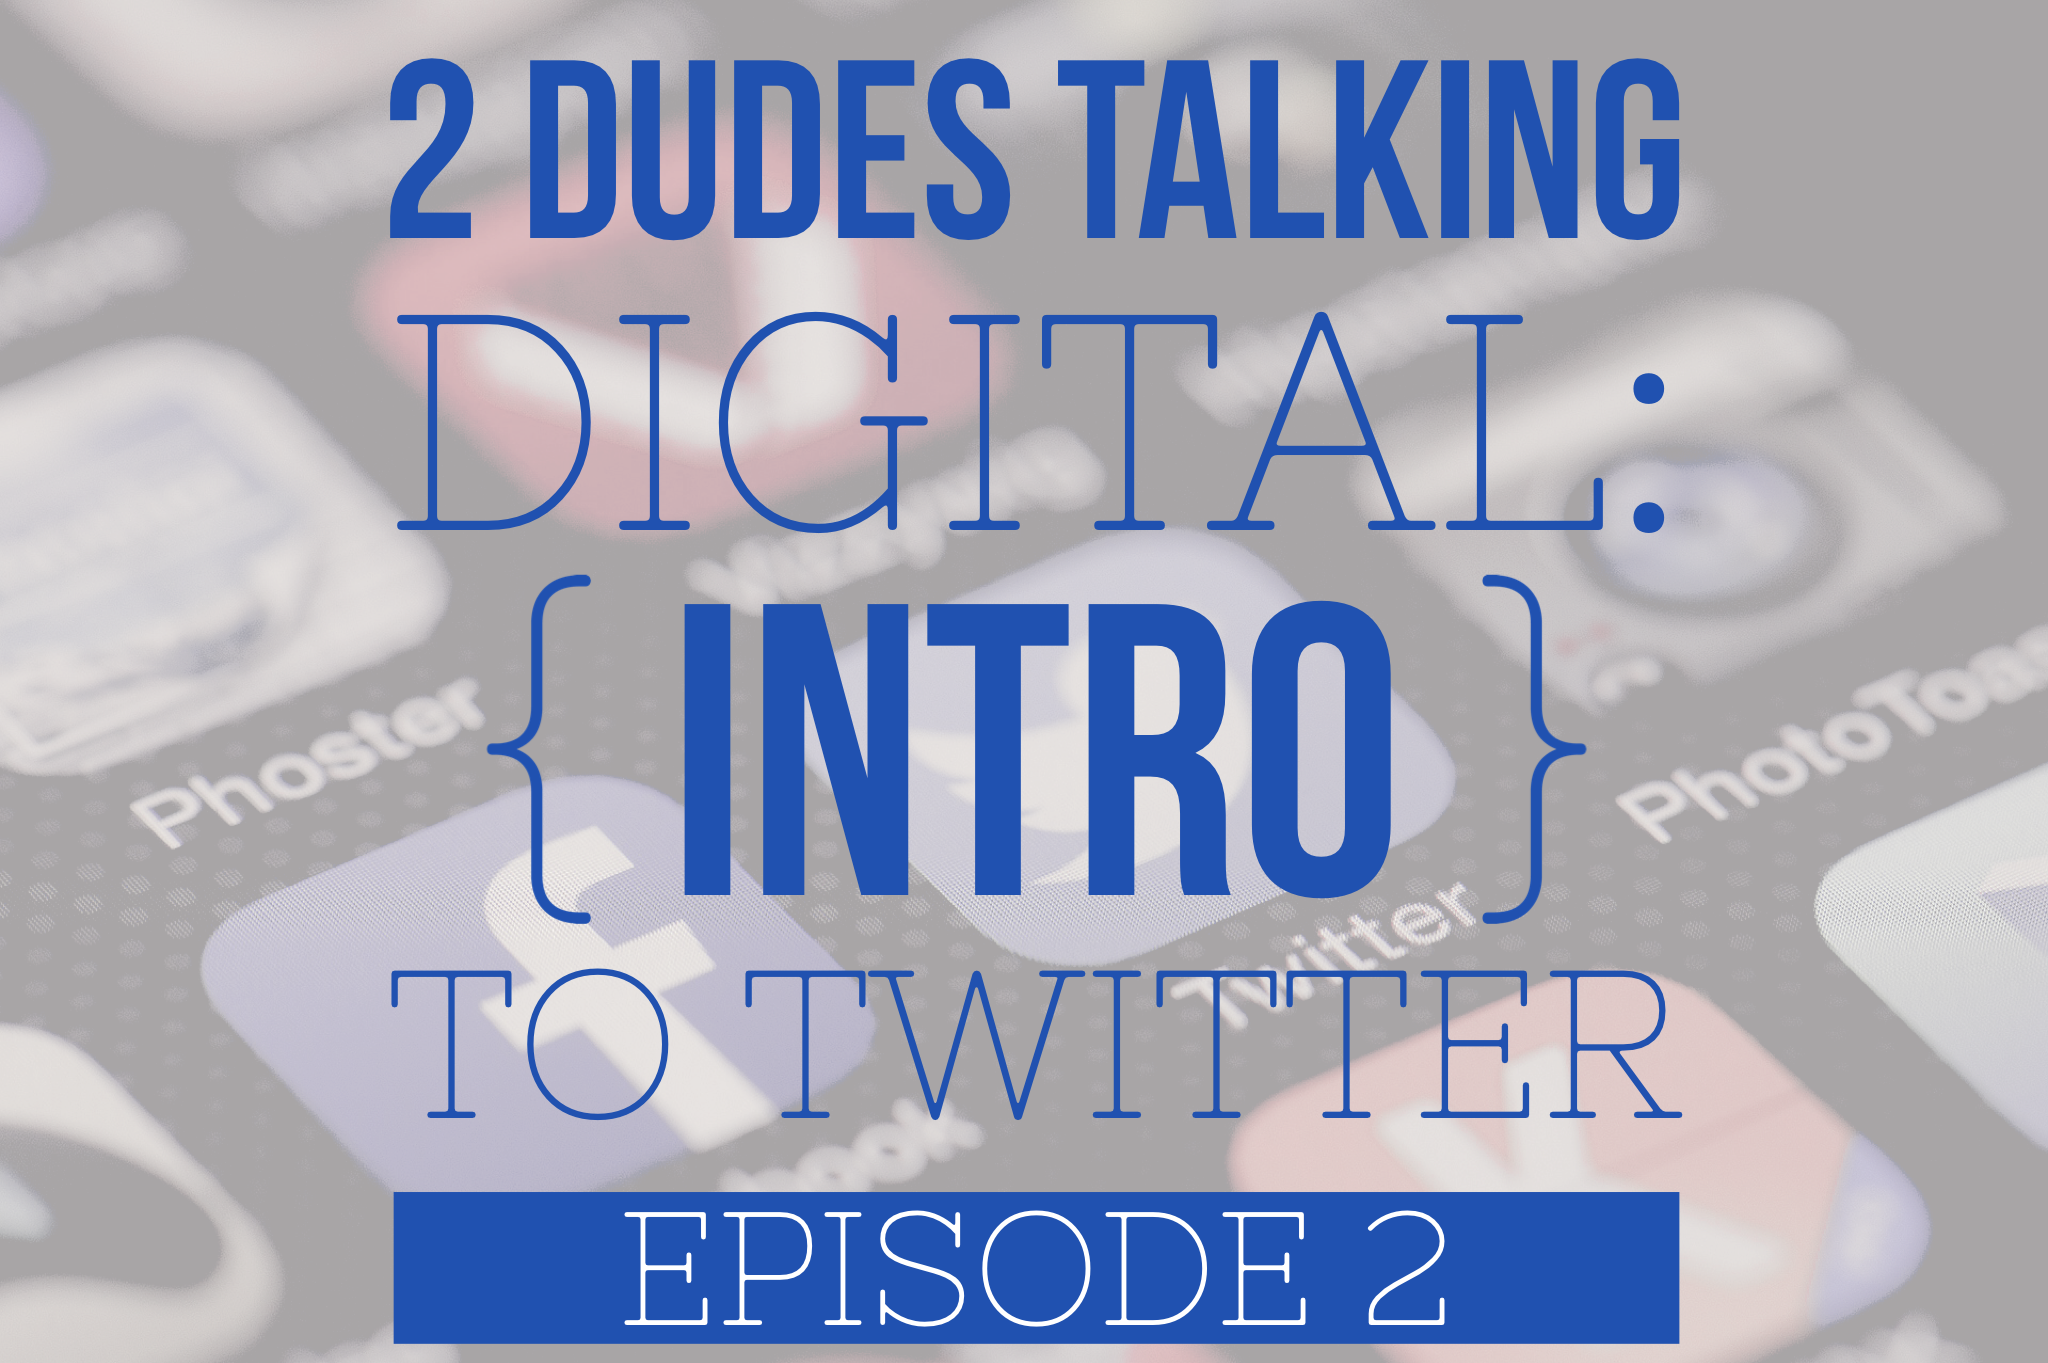 Intro to Twitter Episode 2